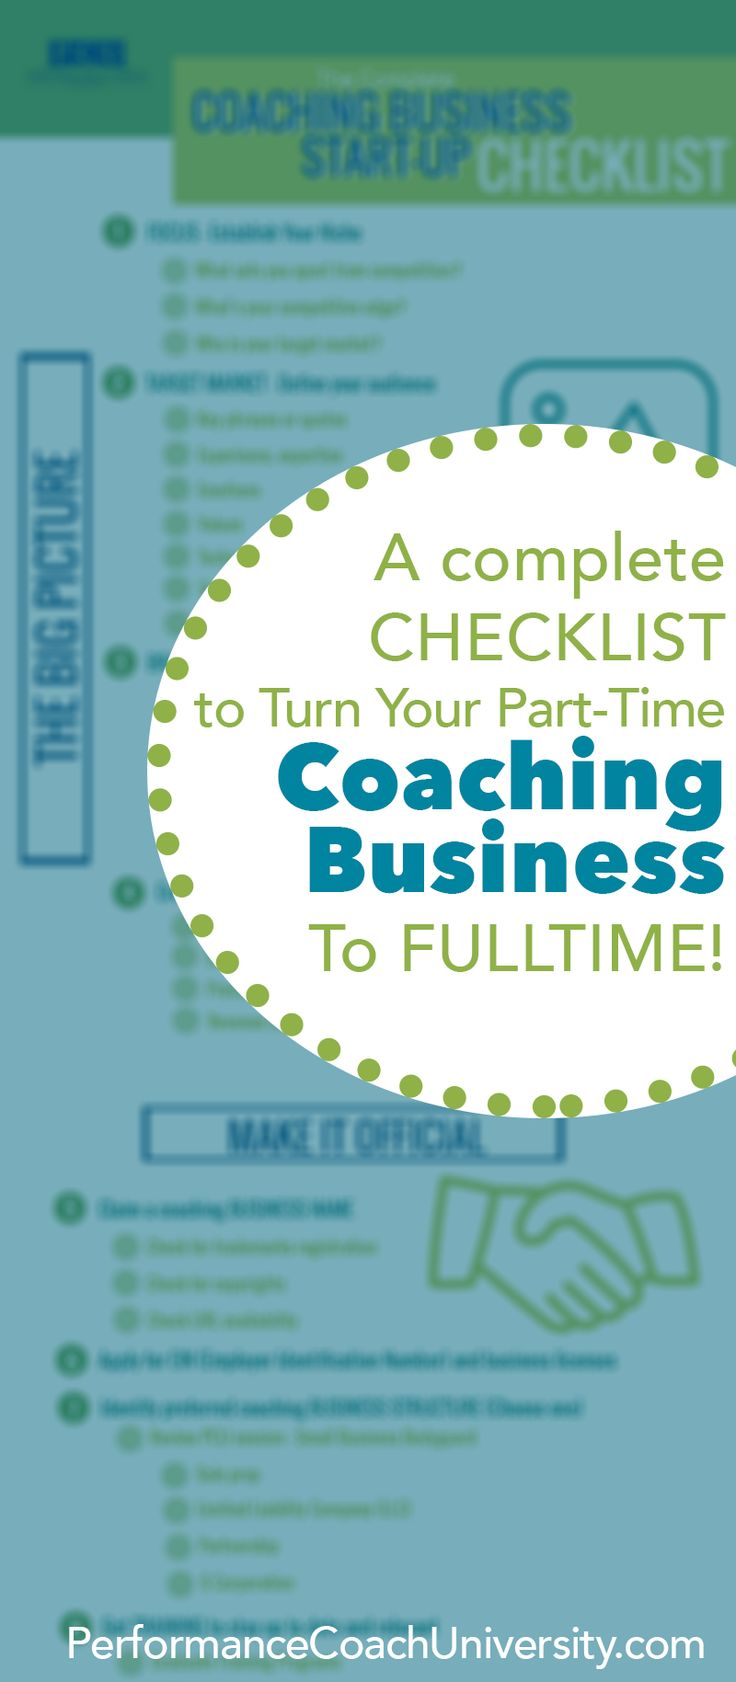 How to start a coaching business. Take your passion or part time work for coaching to full time with this complete checklist on starting and growing a coaching business. Great for performance coaches, life coaches, health coaches, personal trainers, or anyone looking to build and grow their business to serve more people to live a happier, healthier and more fulfilled life!  Find other tools and resources at http://performancecoachuniversity.com